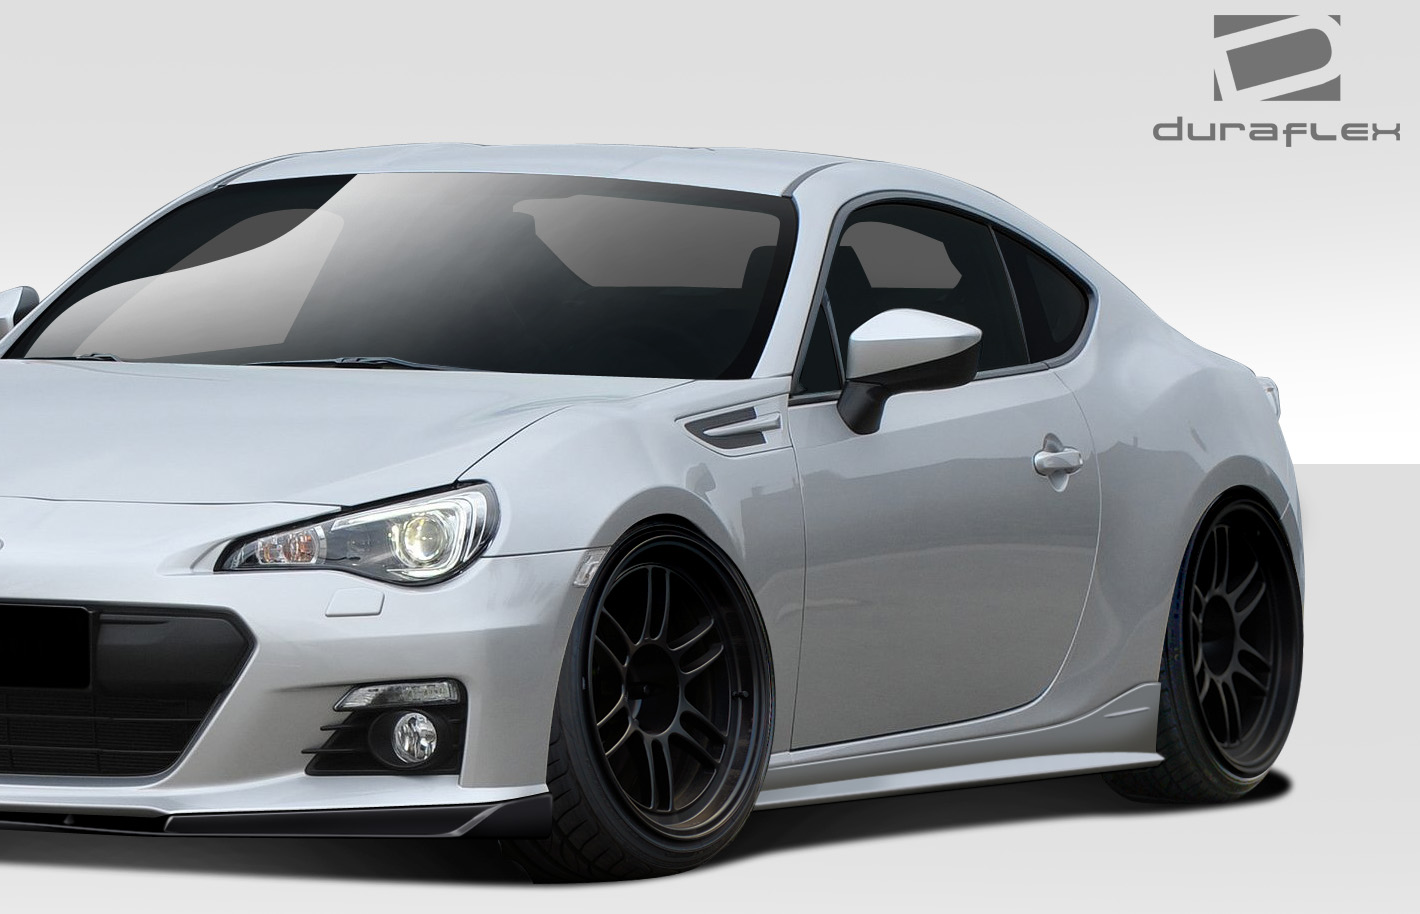 2015 scion frs sideskirts body kit 2013 2018 scion fr s toyota 86 subaru brz duraflex zeus. Black Bedroom Furniture Sets. Home Design Ideas